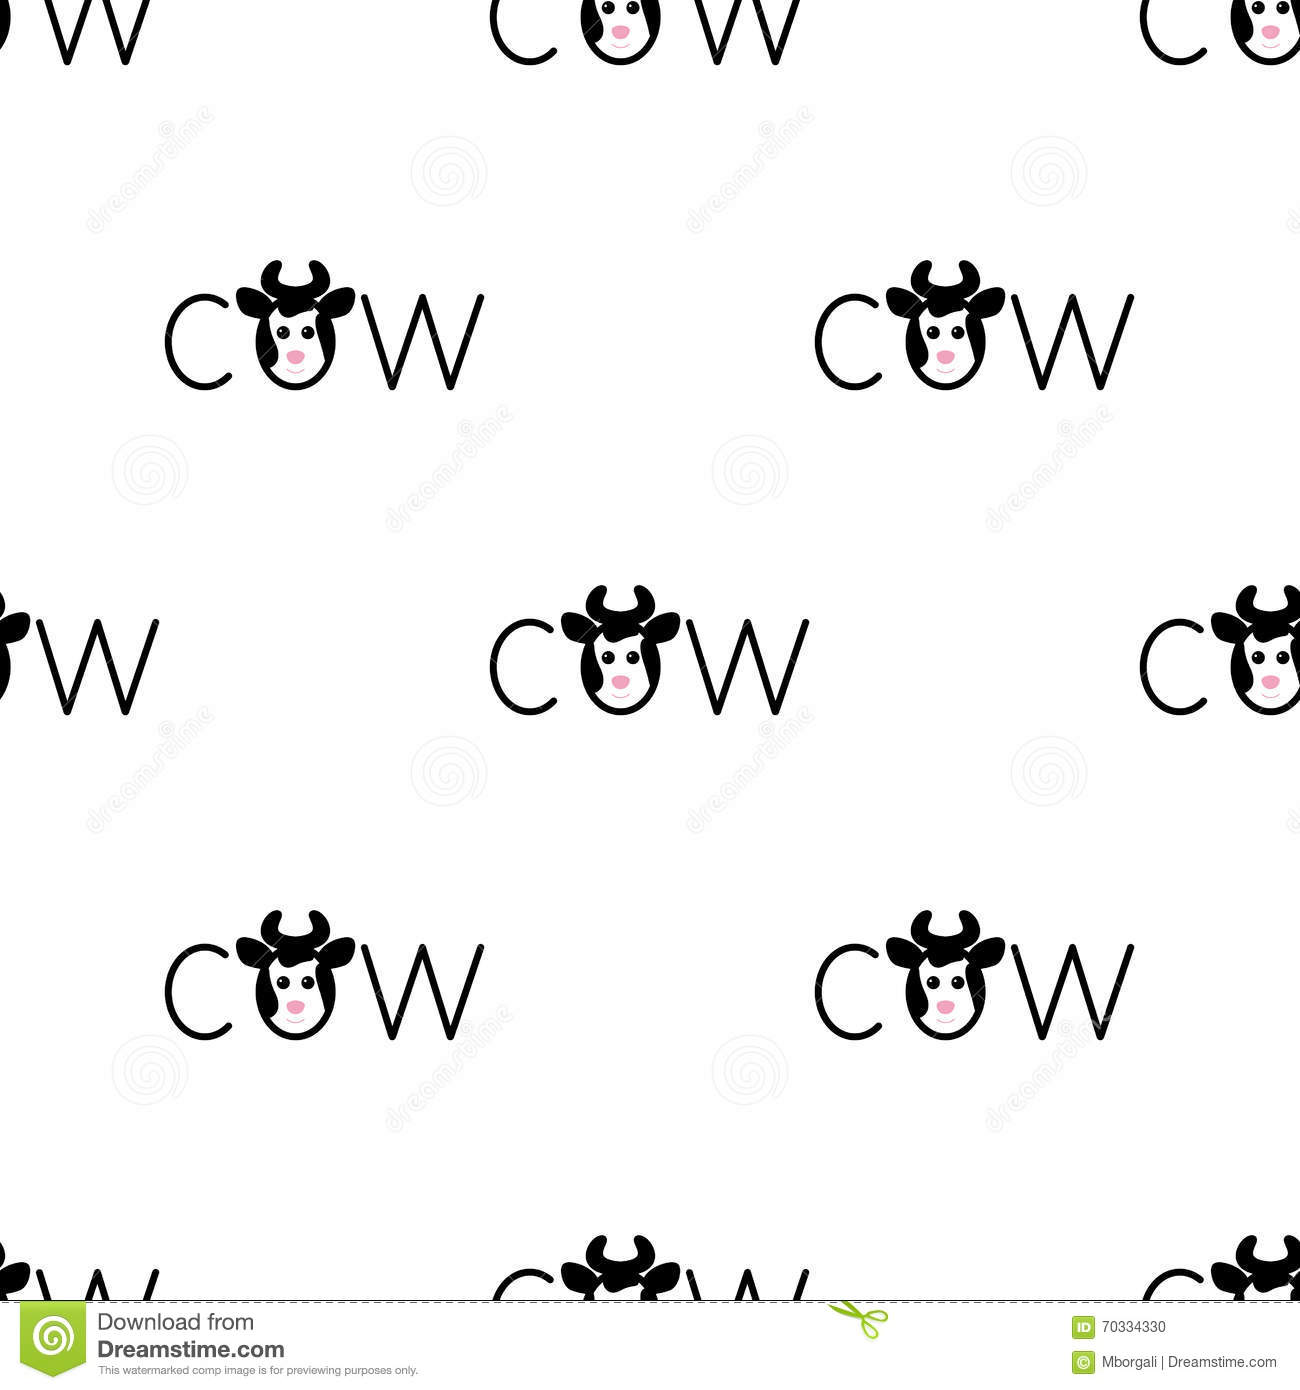 Seamless pattern with spotted cow